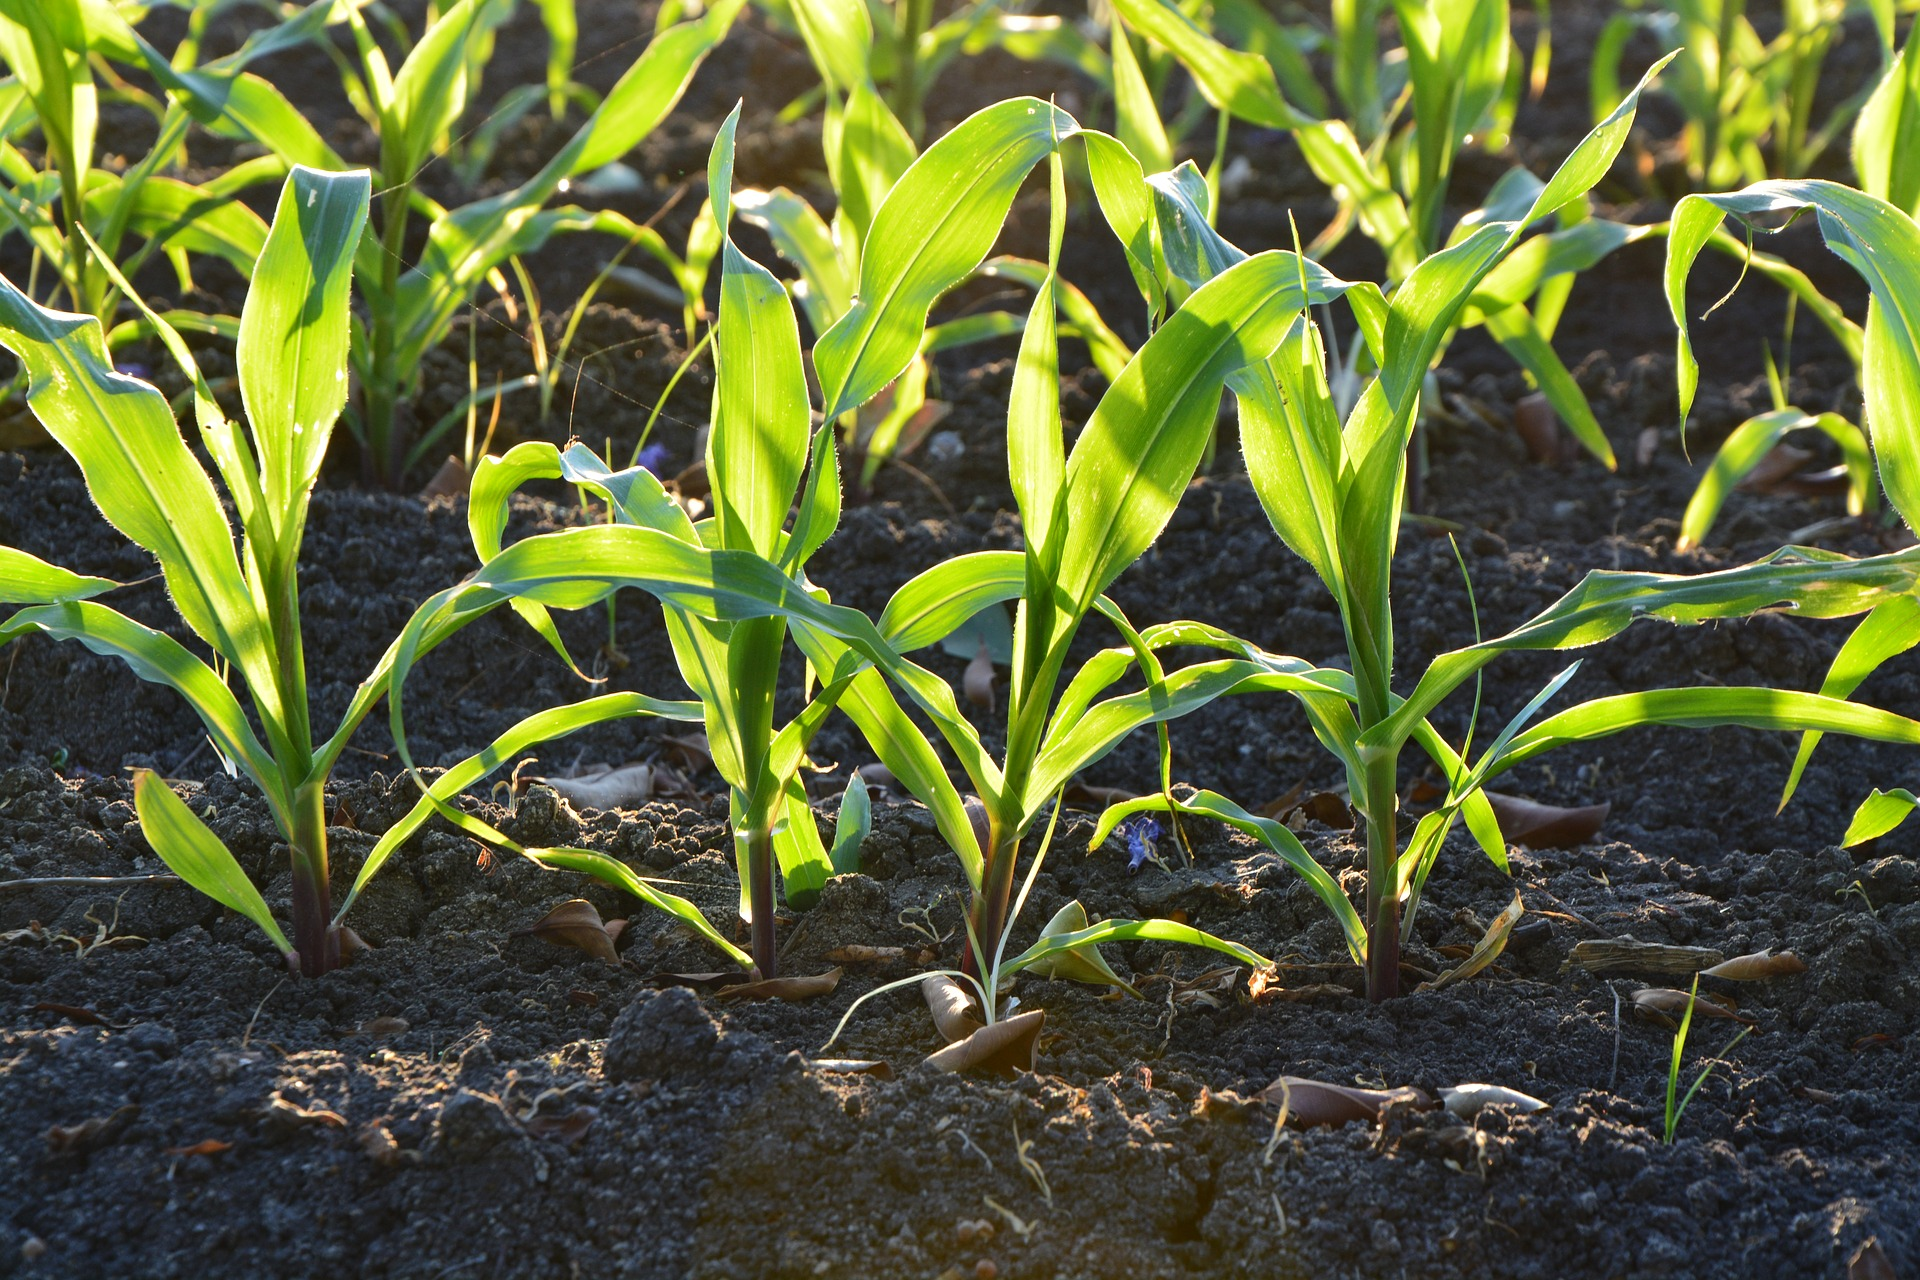 Corn in soil. Photo courtesy of Pixabay.